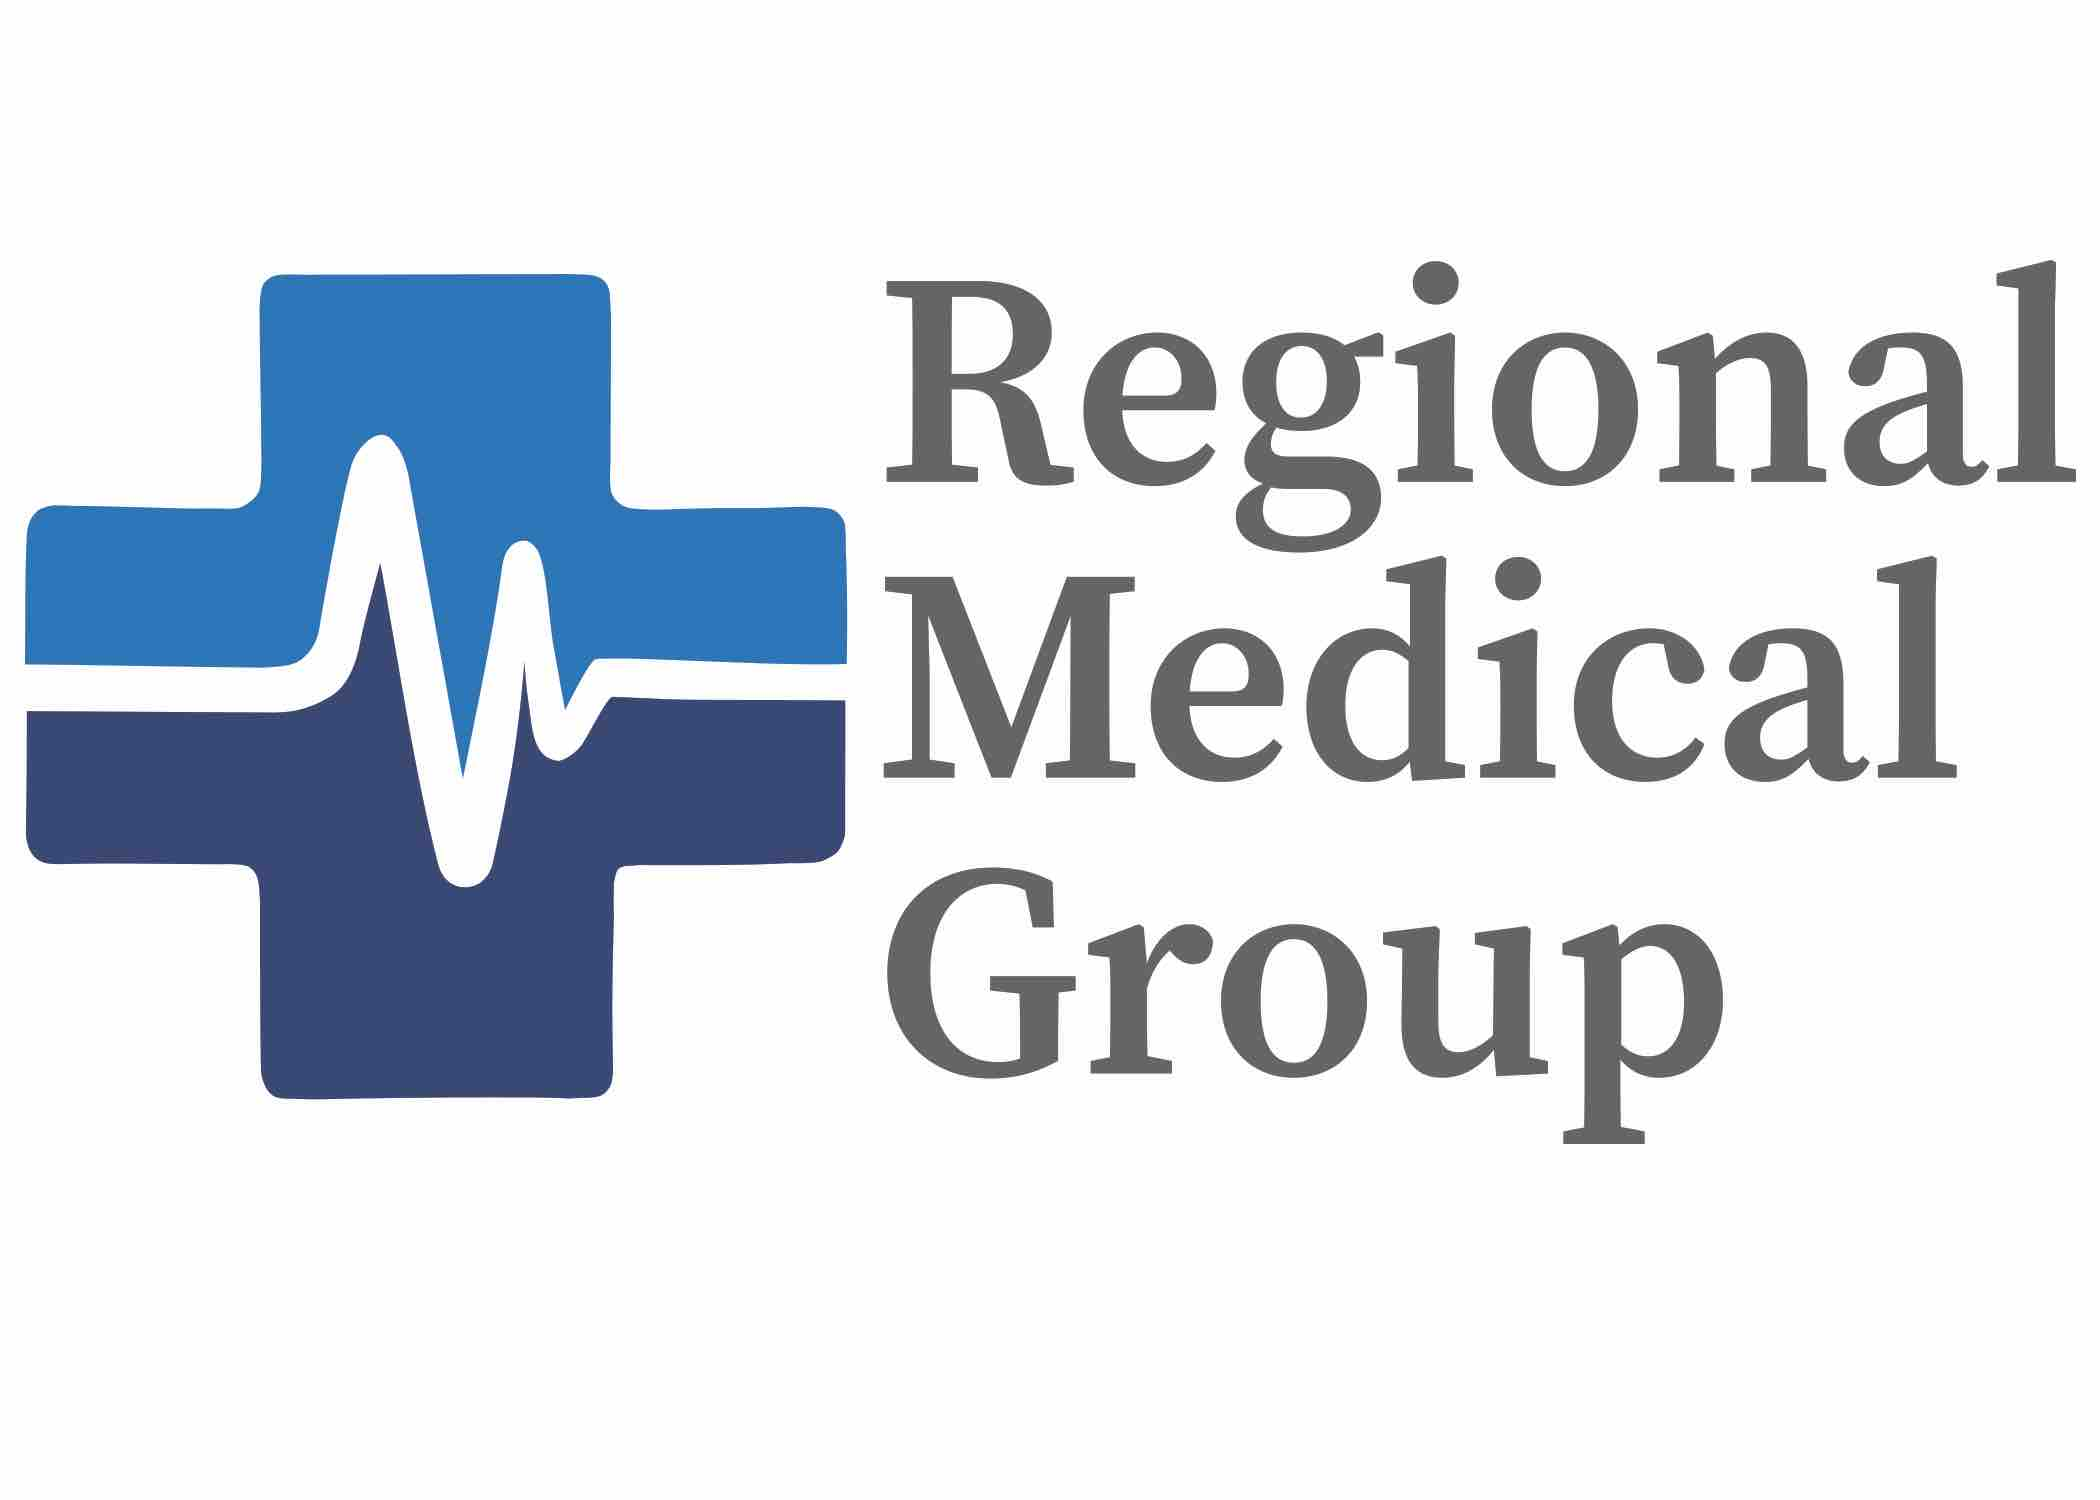 Regional Medical Group Announces Women's History Month Initiative Celebration